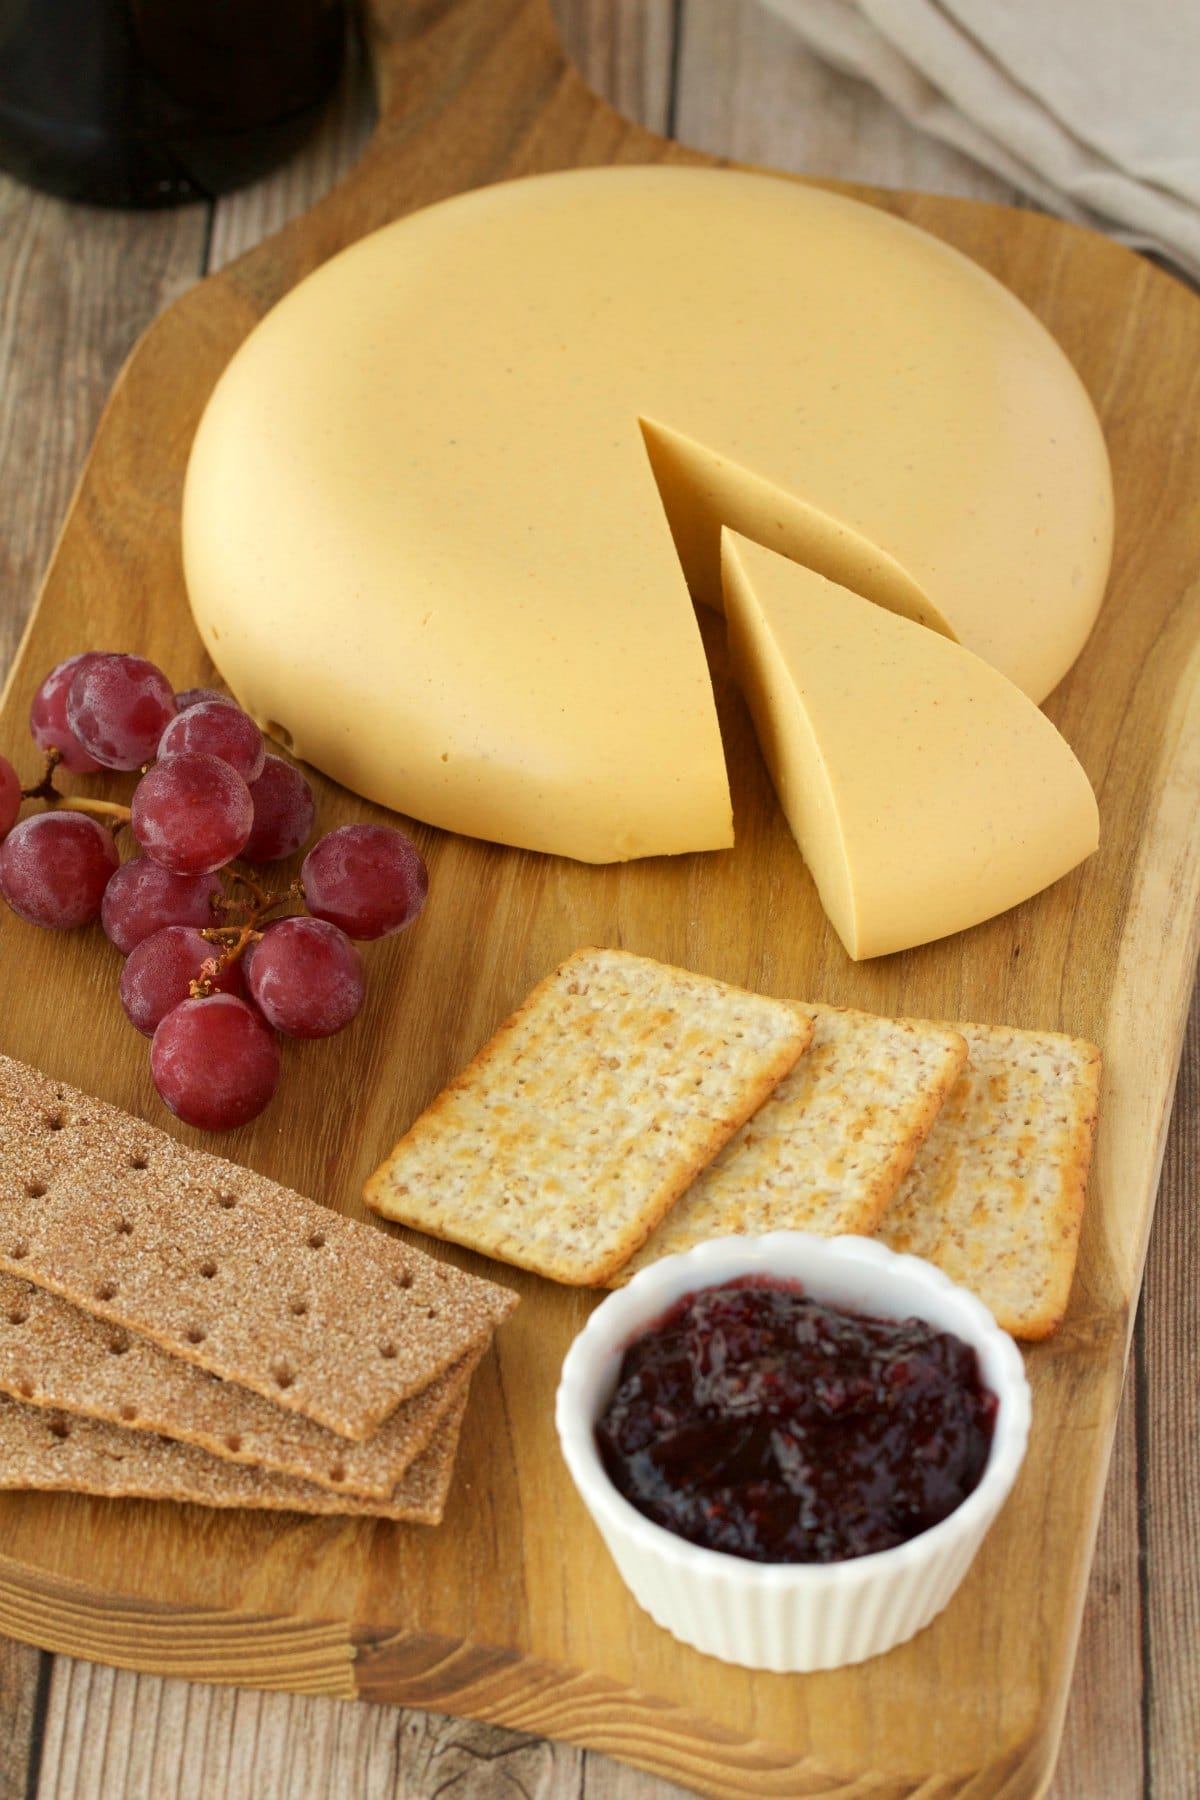 Wheel of vegan cashew cheese on a cheeseboard with crackers, grapes and jam.